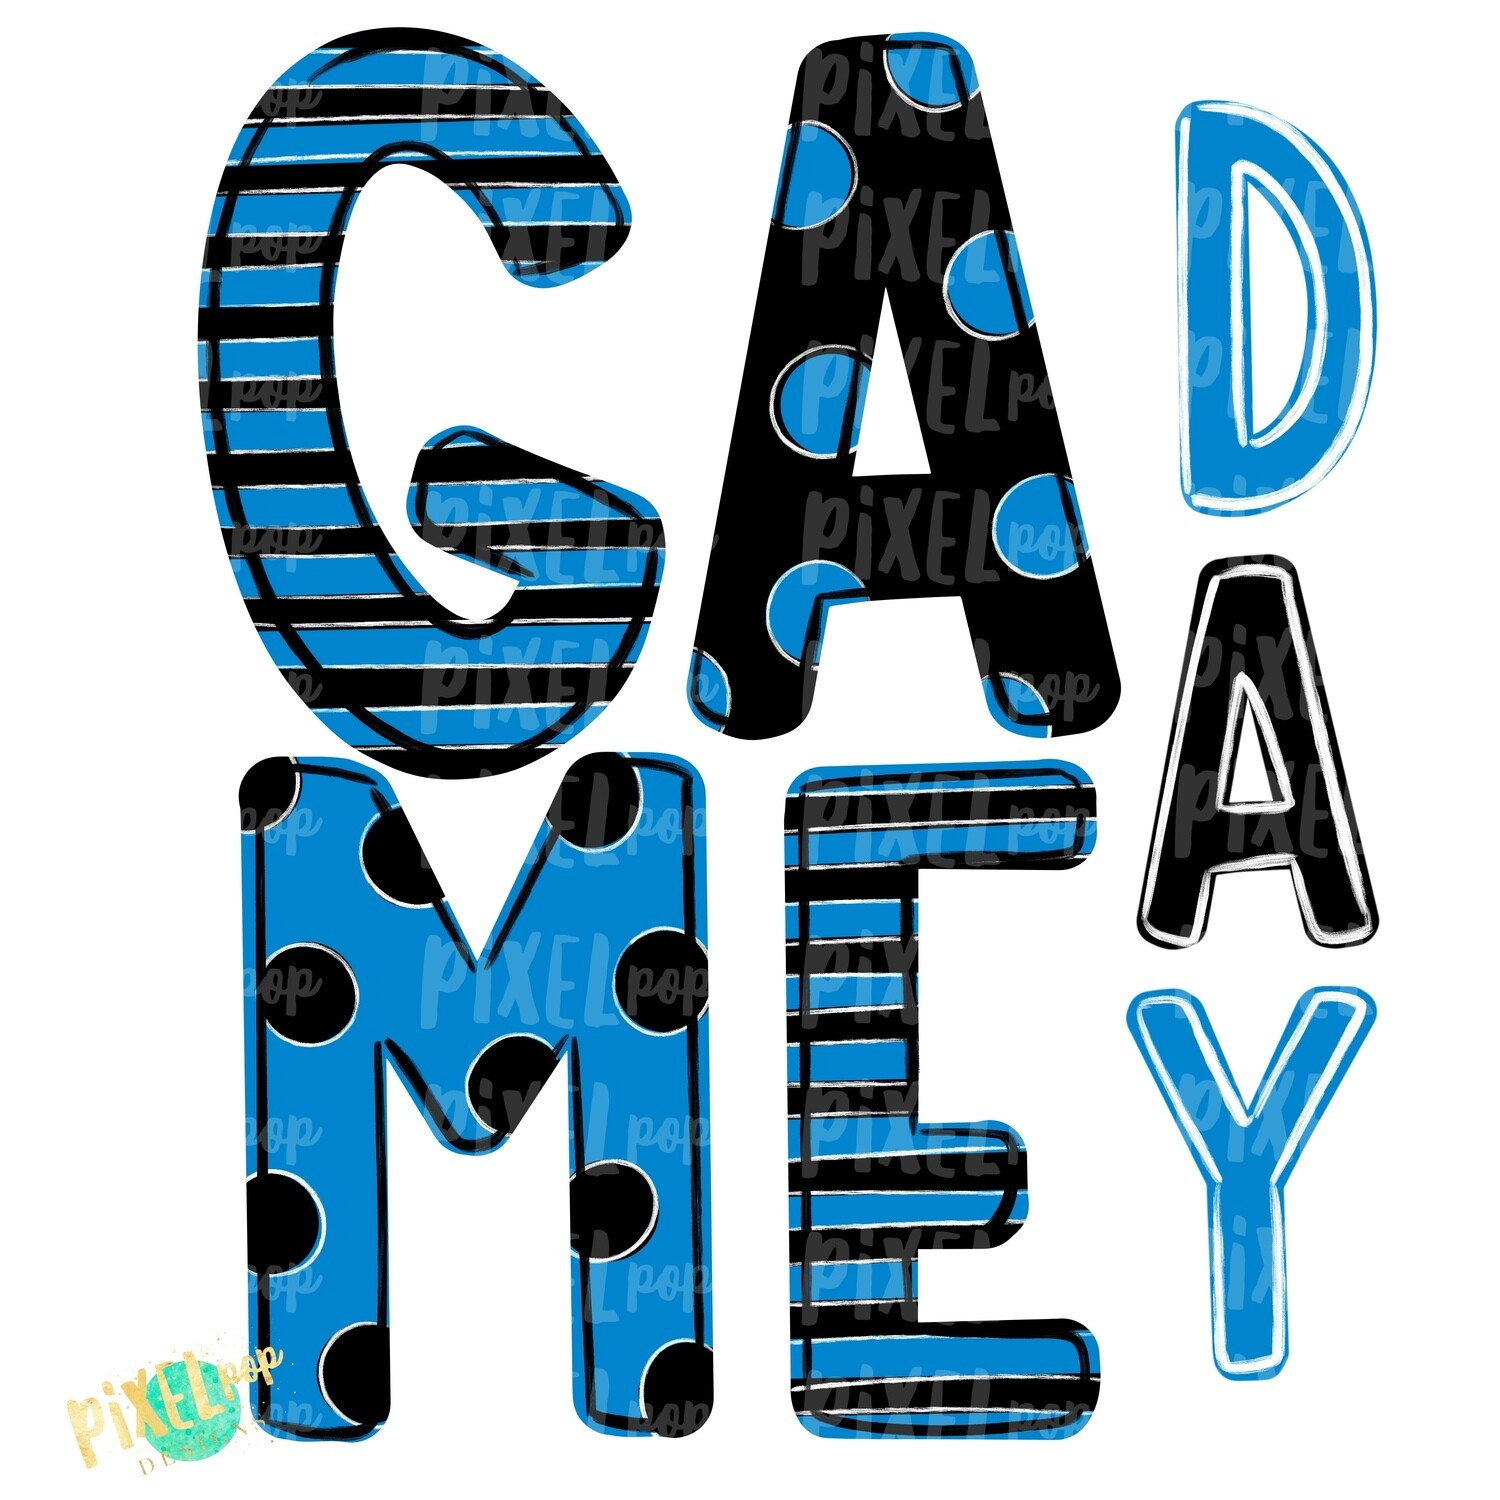 Game Day Black Teal PNG | Spirit Sublimation Design | School Spirit | Game Day Design | School Clip Art | Sports Design